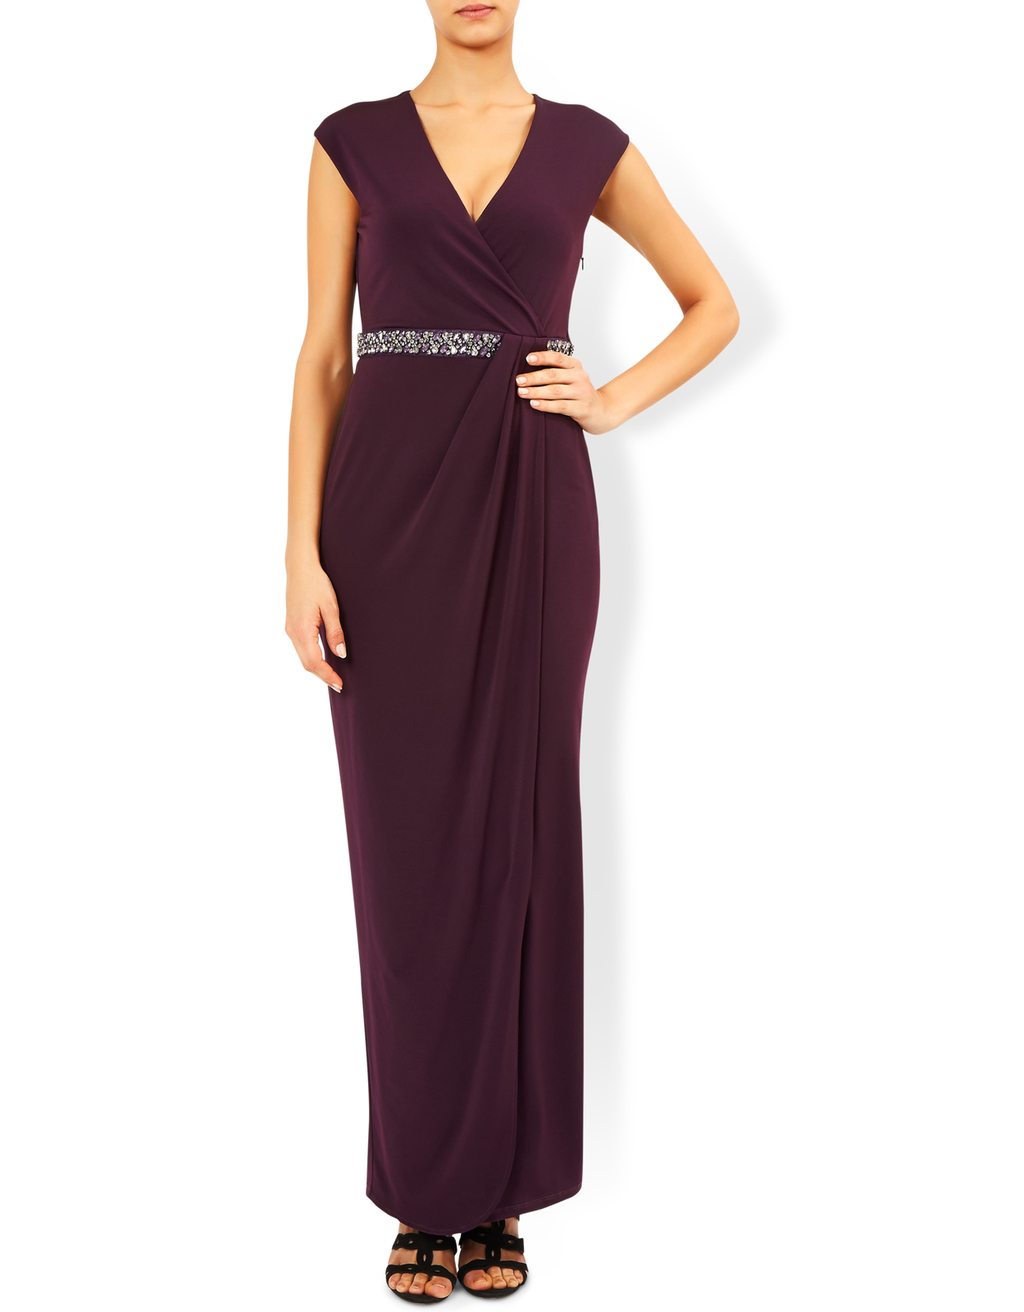 Adrianna Embellished Maxi Dress - neckline: low v-neck; sleeve style: capped; pattern: plain; style: maxi dress; length: ankle length; waist detail: embellishment at waist/feature waistband; predominant colour: aubergine; occasions: evening; fit: body skimming; fibres: polyester/polyamide - stretch; sleeve length: short sleeve; pattern type: fabric; texture group: jersey - stretchy/drapey; season: a/w 2016